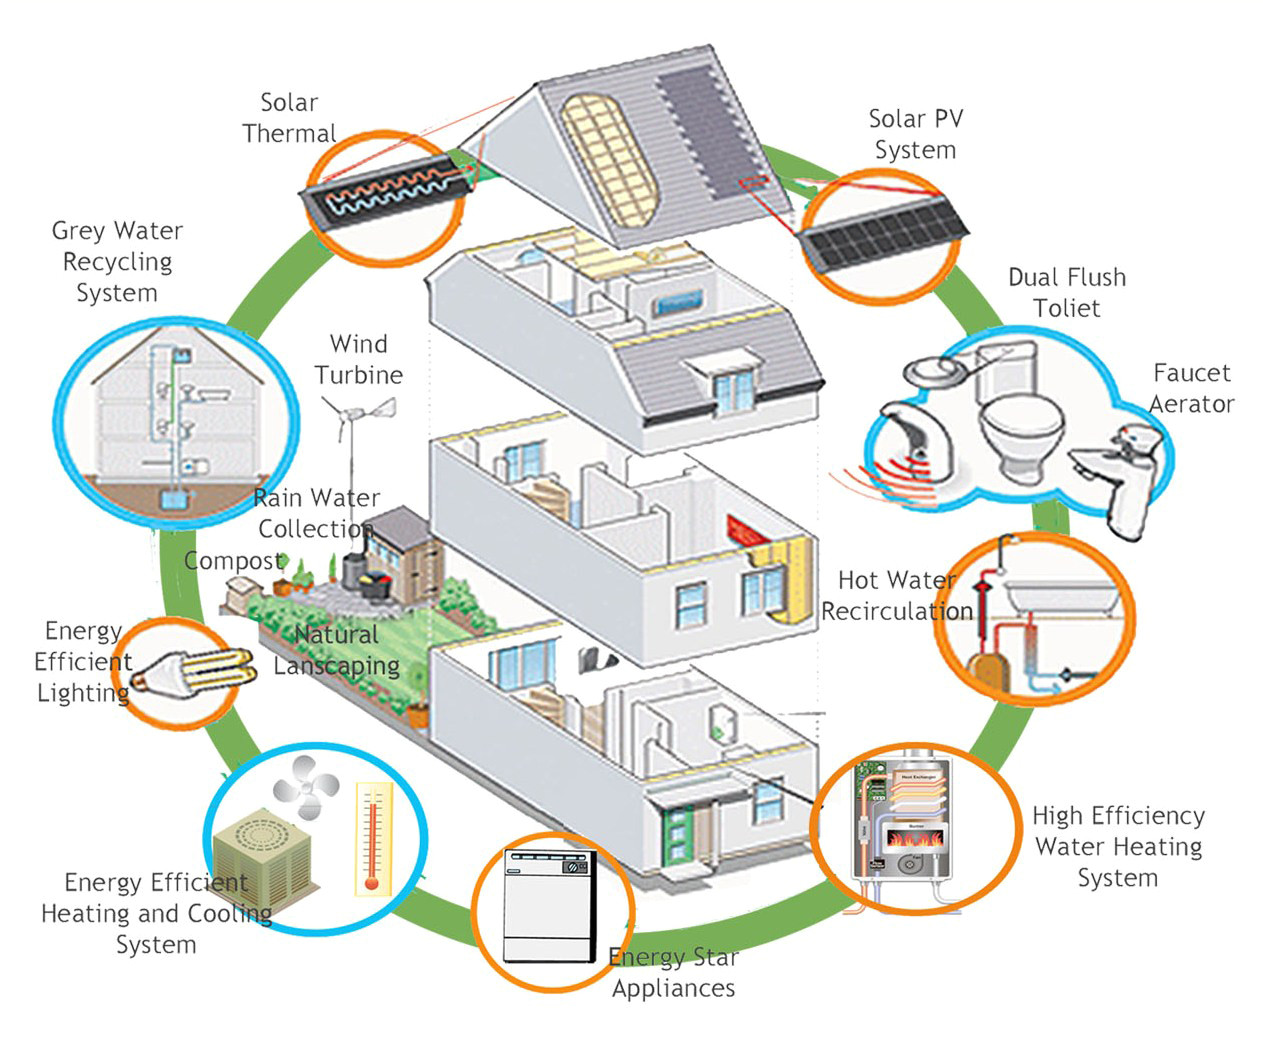 Eco Friendly Home Plans why Not Build Eco Friendly House asia Green Buildings